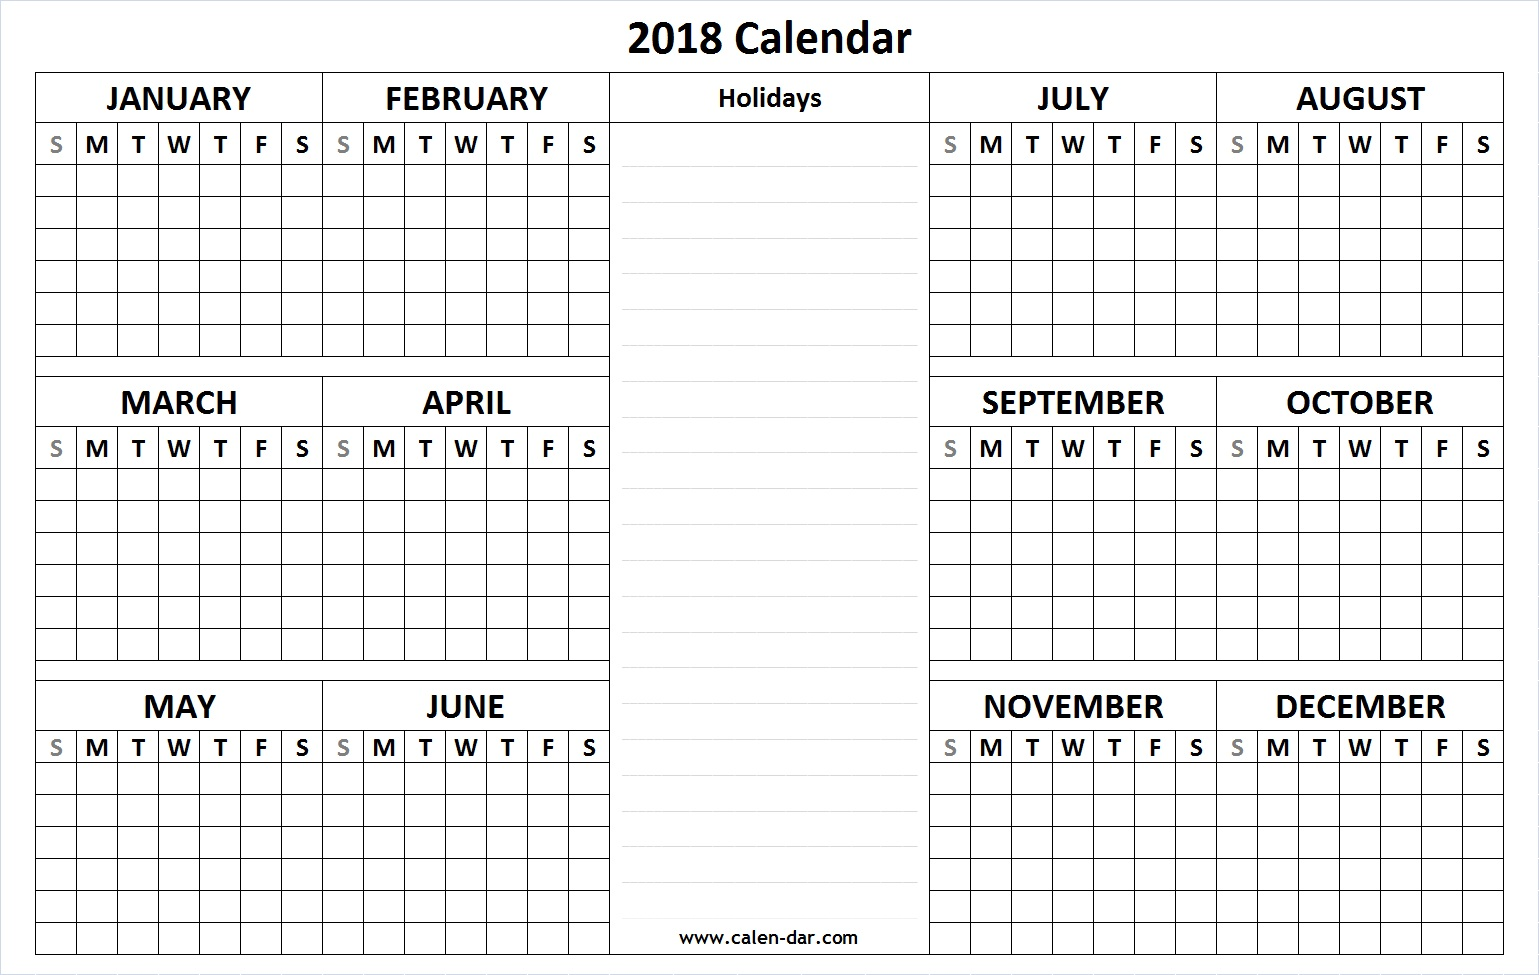 2018 Calendar Printable  Free Download